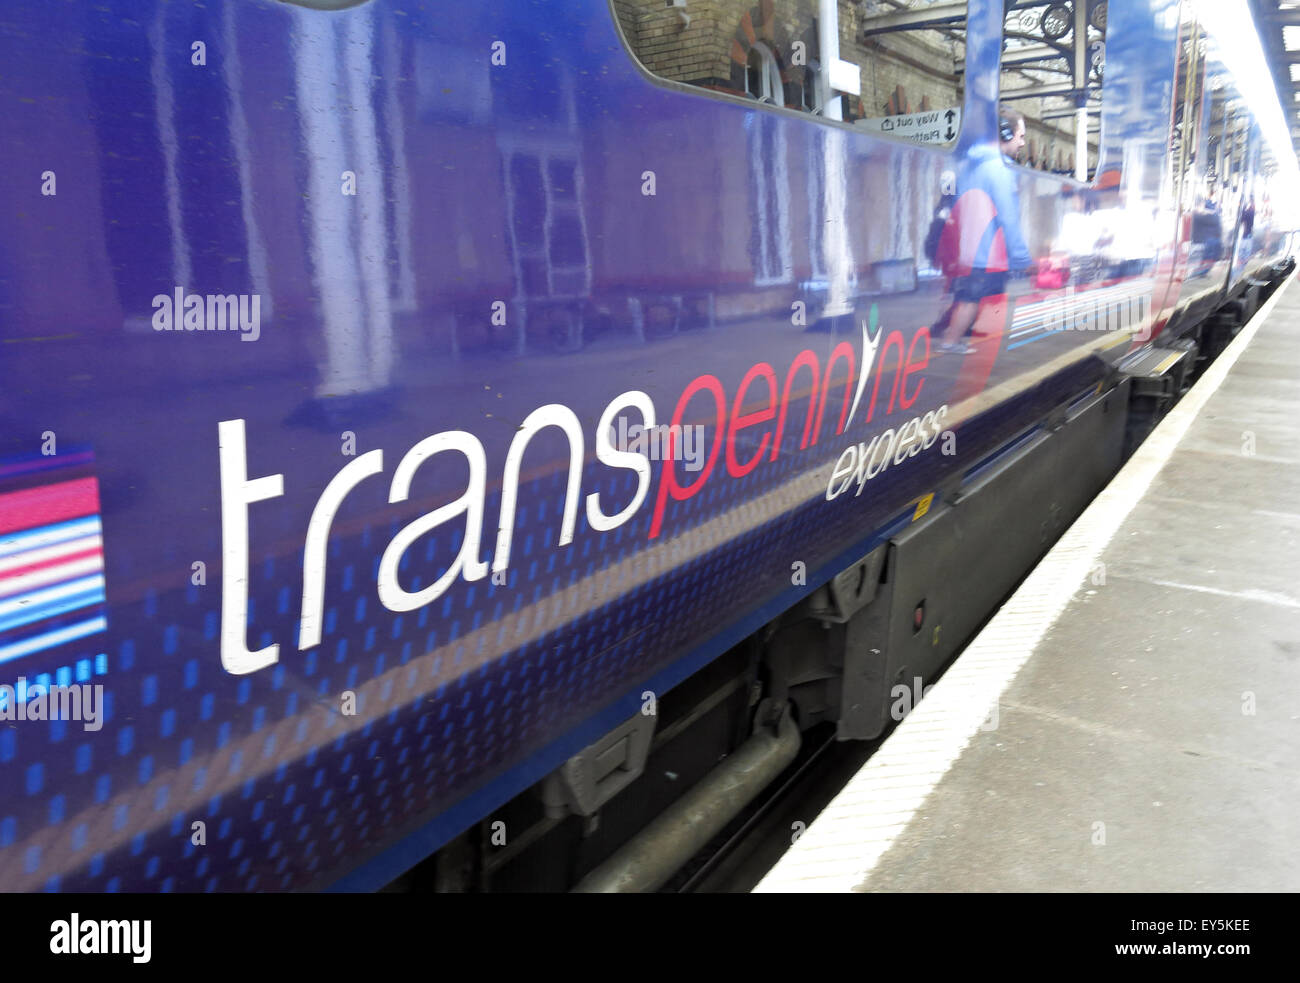 Transpennine train carriage at platform, Warrington Central station, Cheshire,England UK - Stock Image